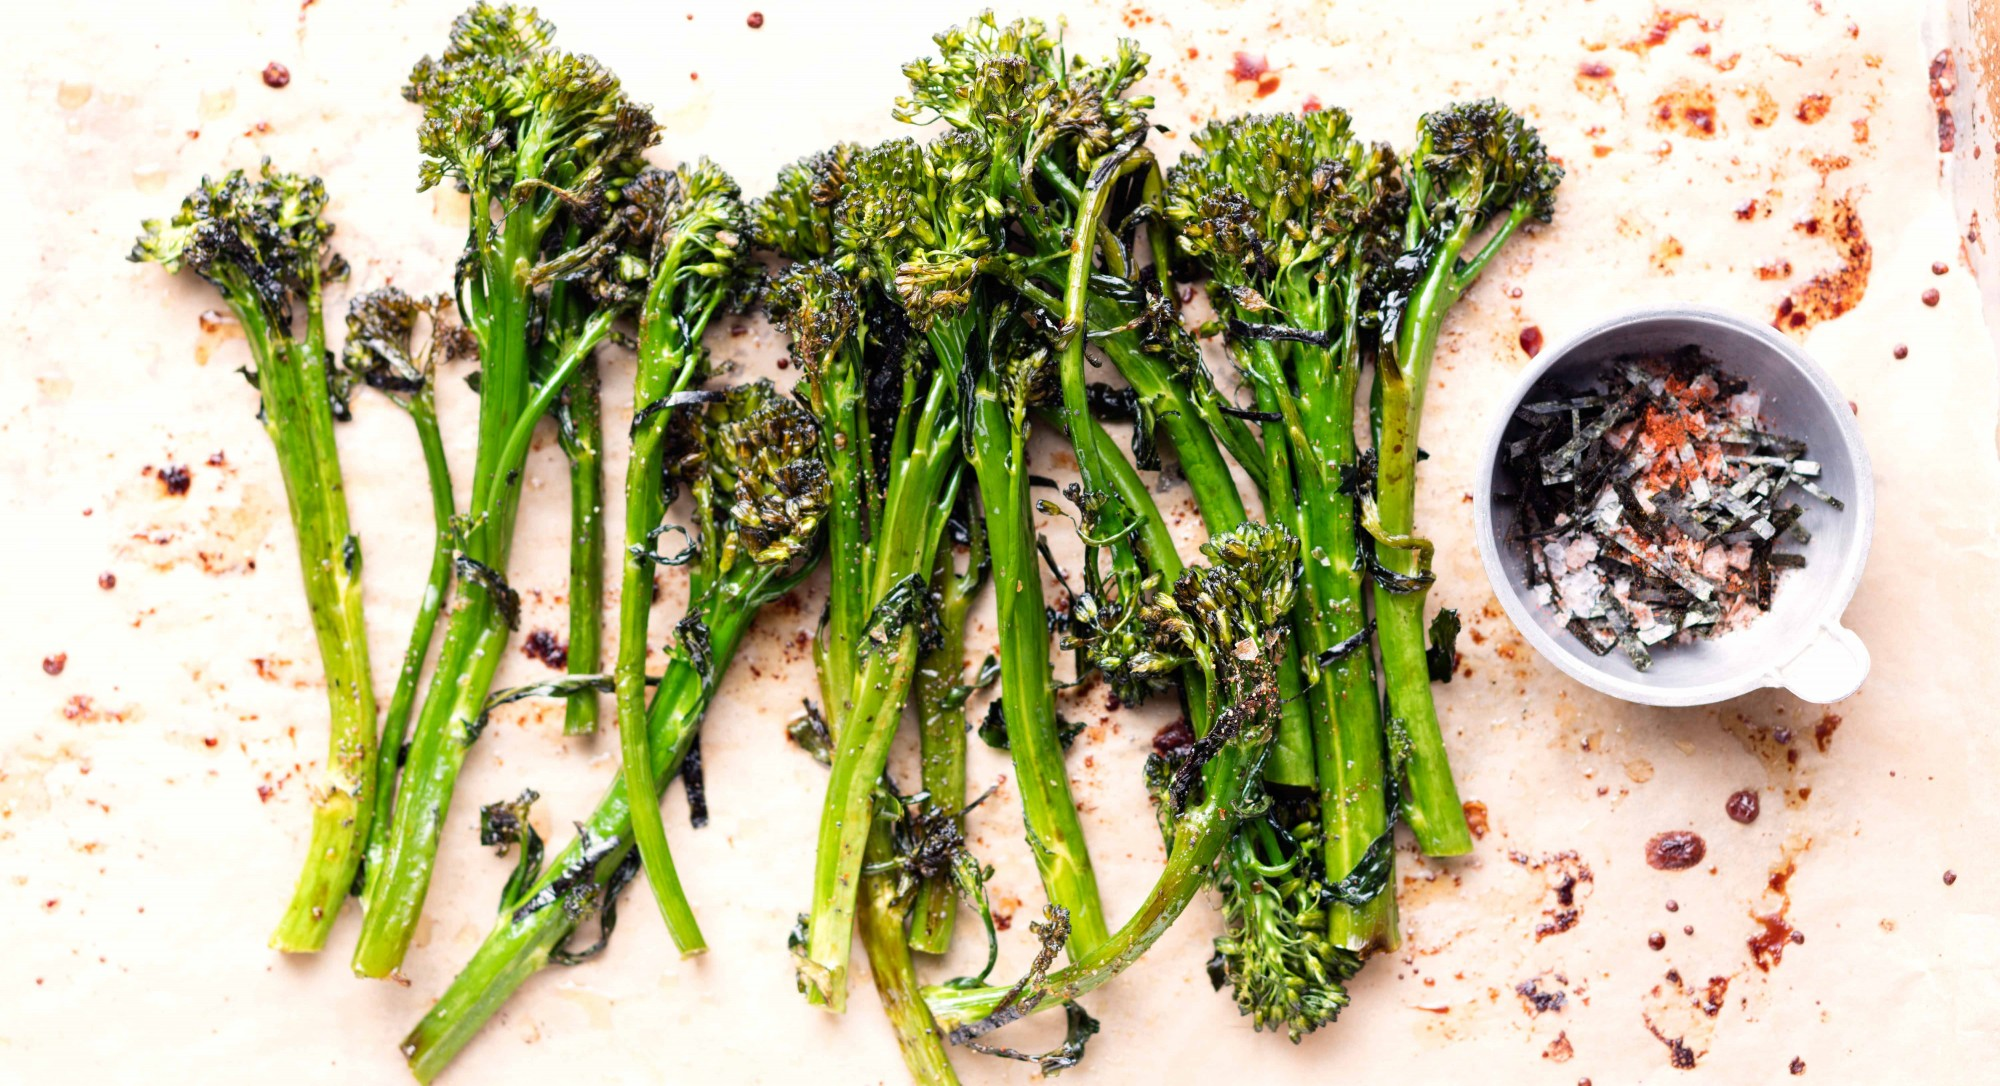 Roasted Broccolini With Nori Salt Recipe